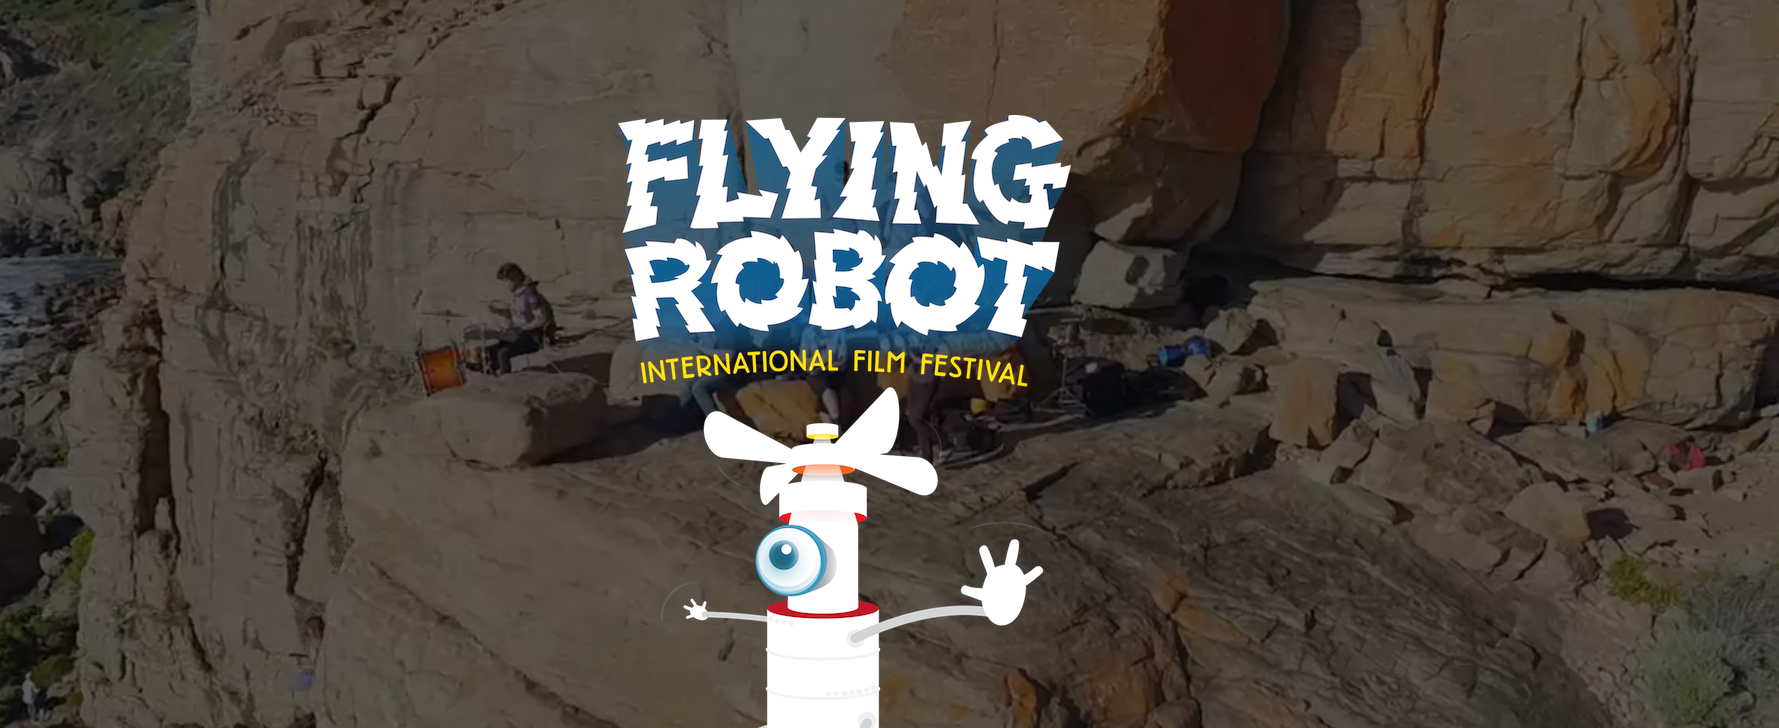 The 3rd annual FRiFF drone film festival is coming this November to San Francisco